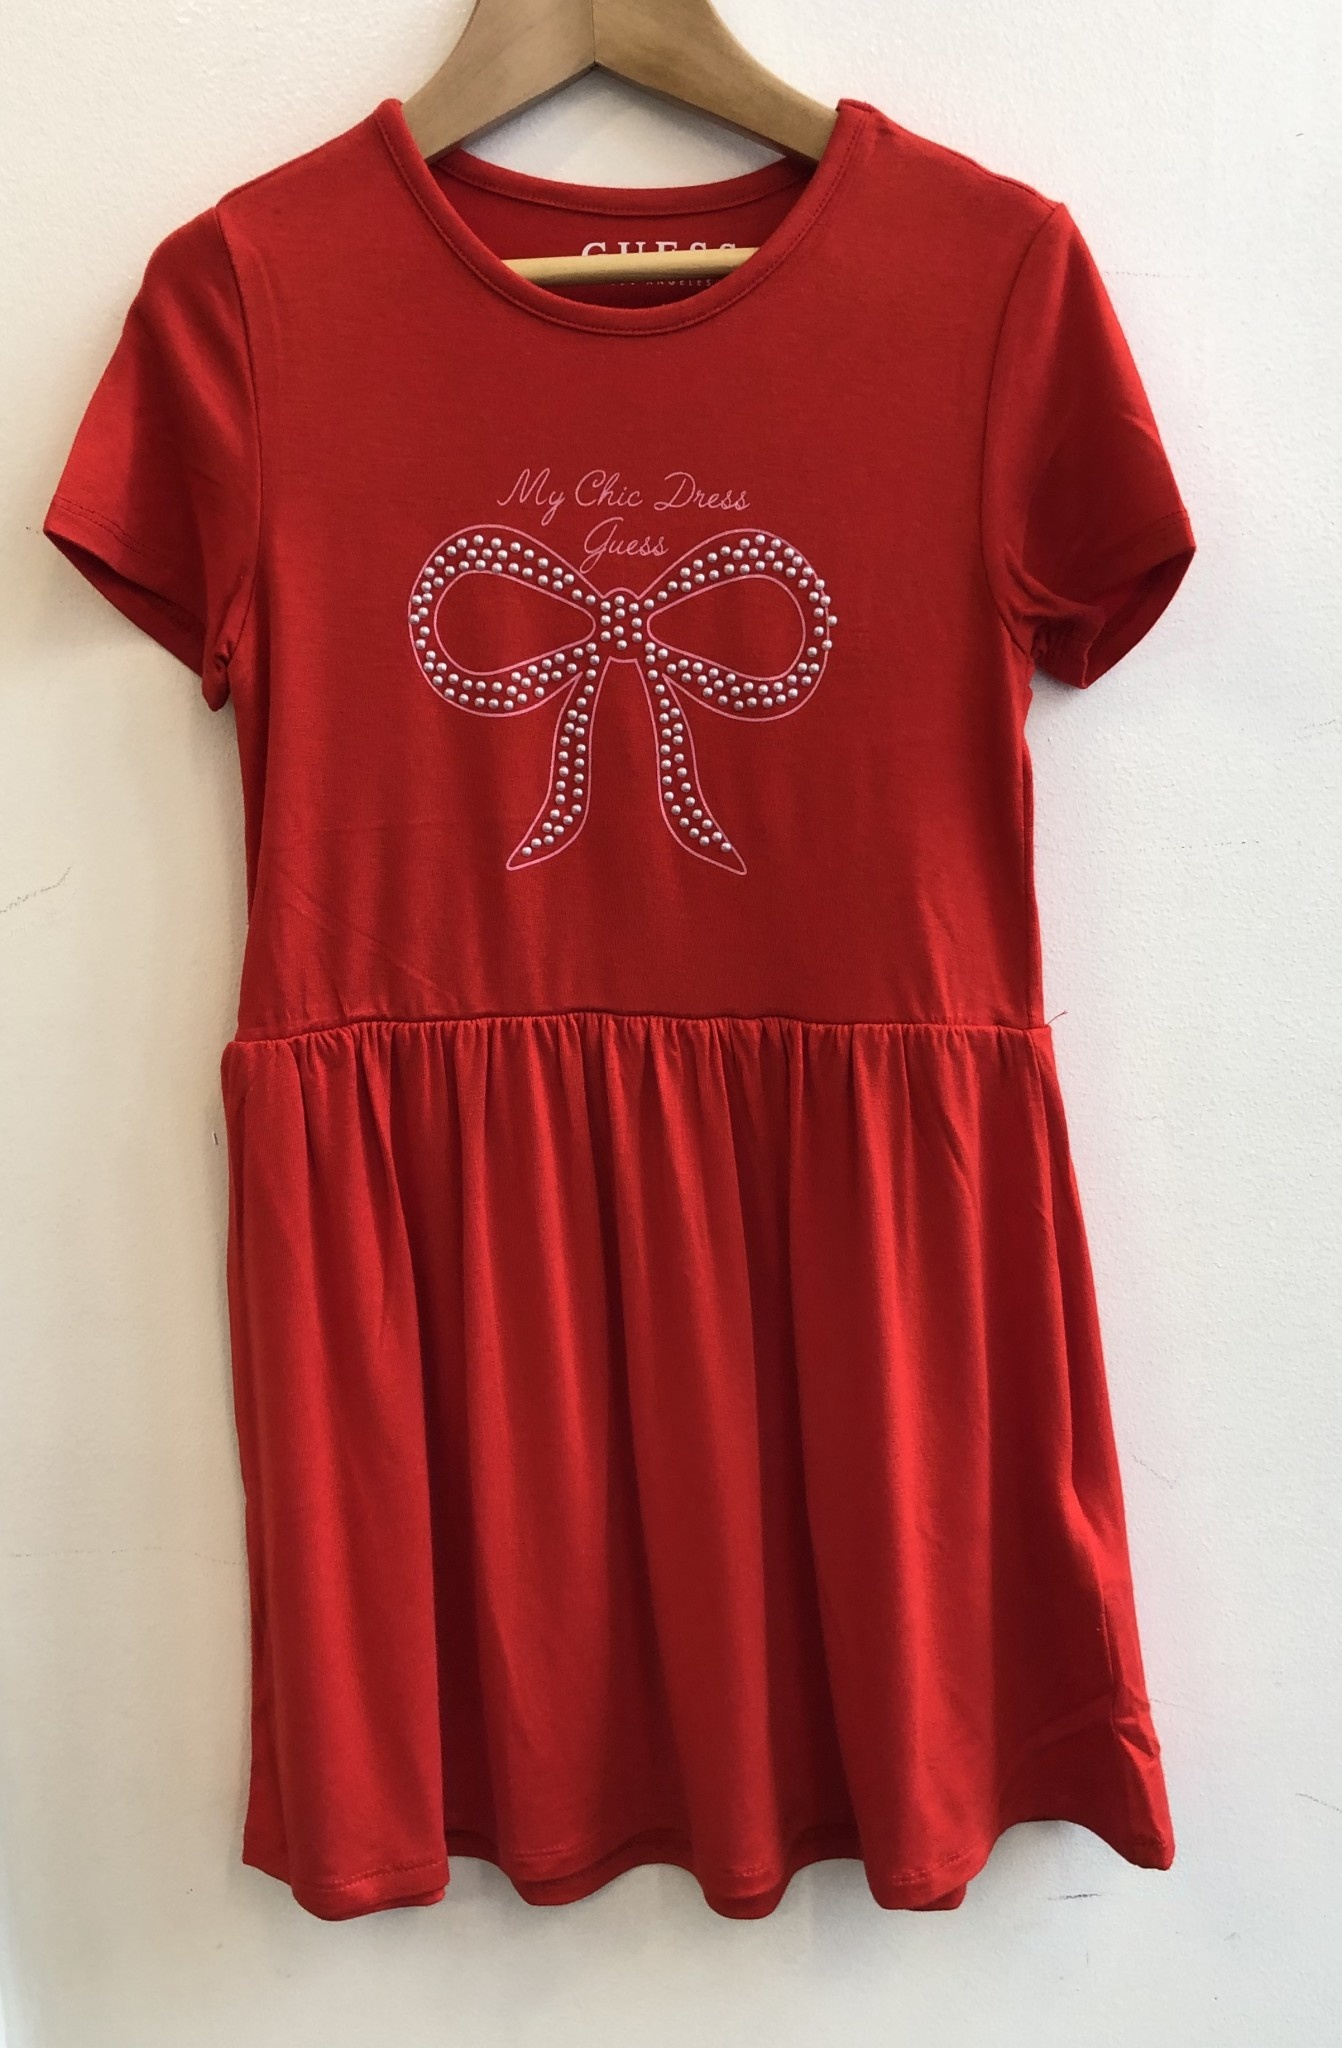 Guess Guess Red Dress With Bow Detail